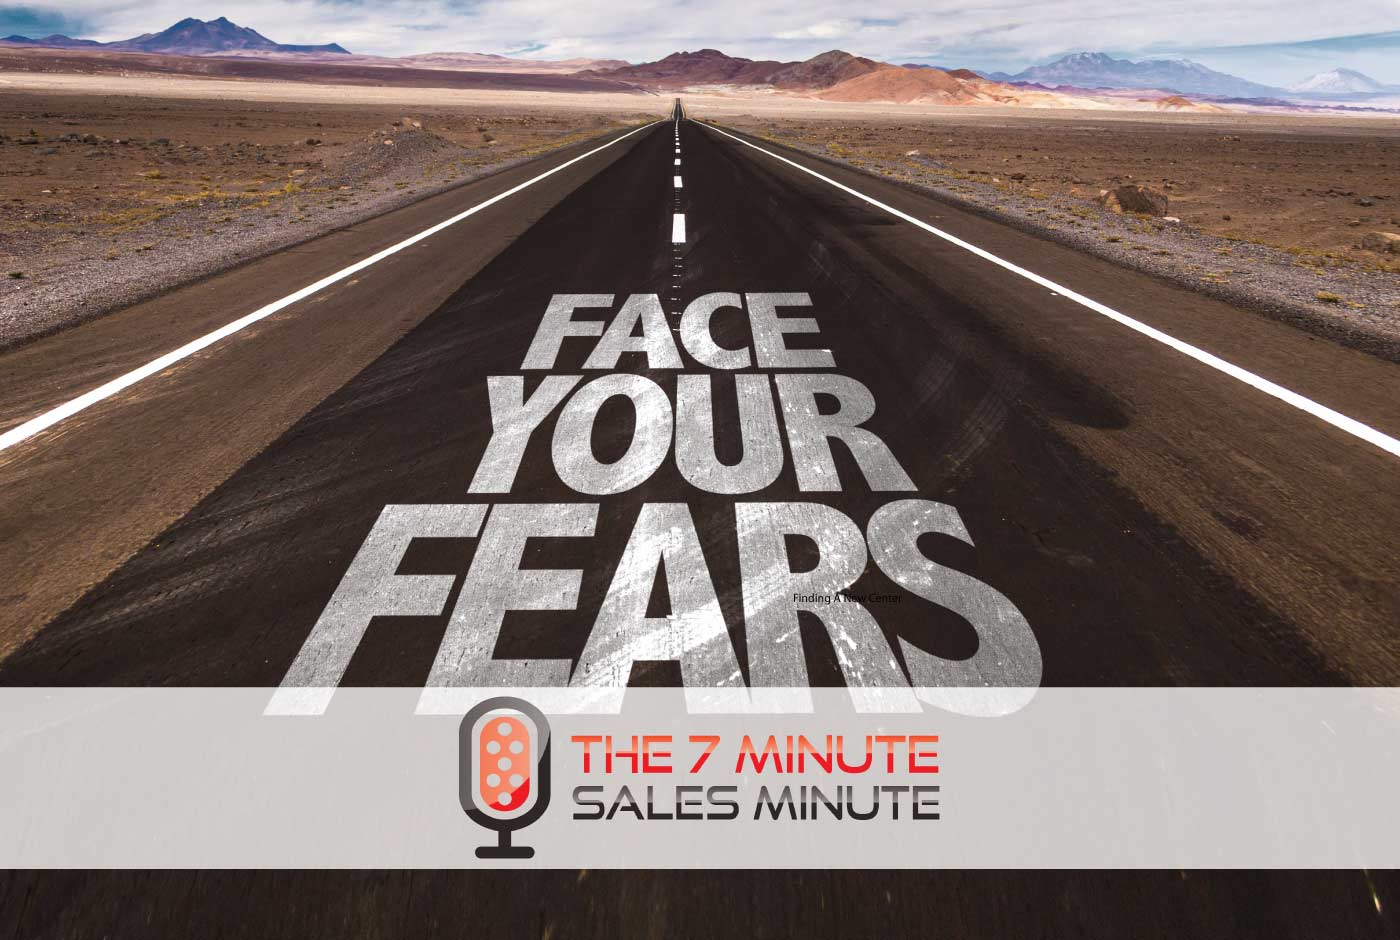 7 Minute Sales Minute Podcast - Season 13 - Episode 13 - Bite Sized: Run To The Fire - image of road that says - face your fears